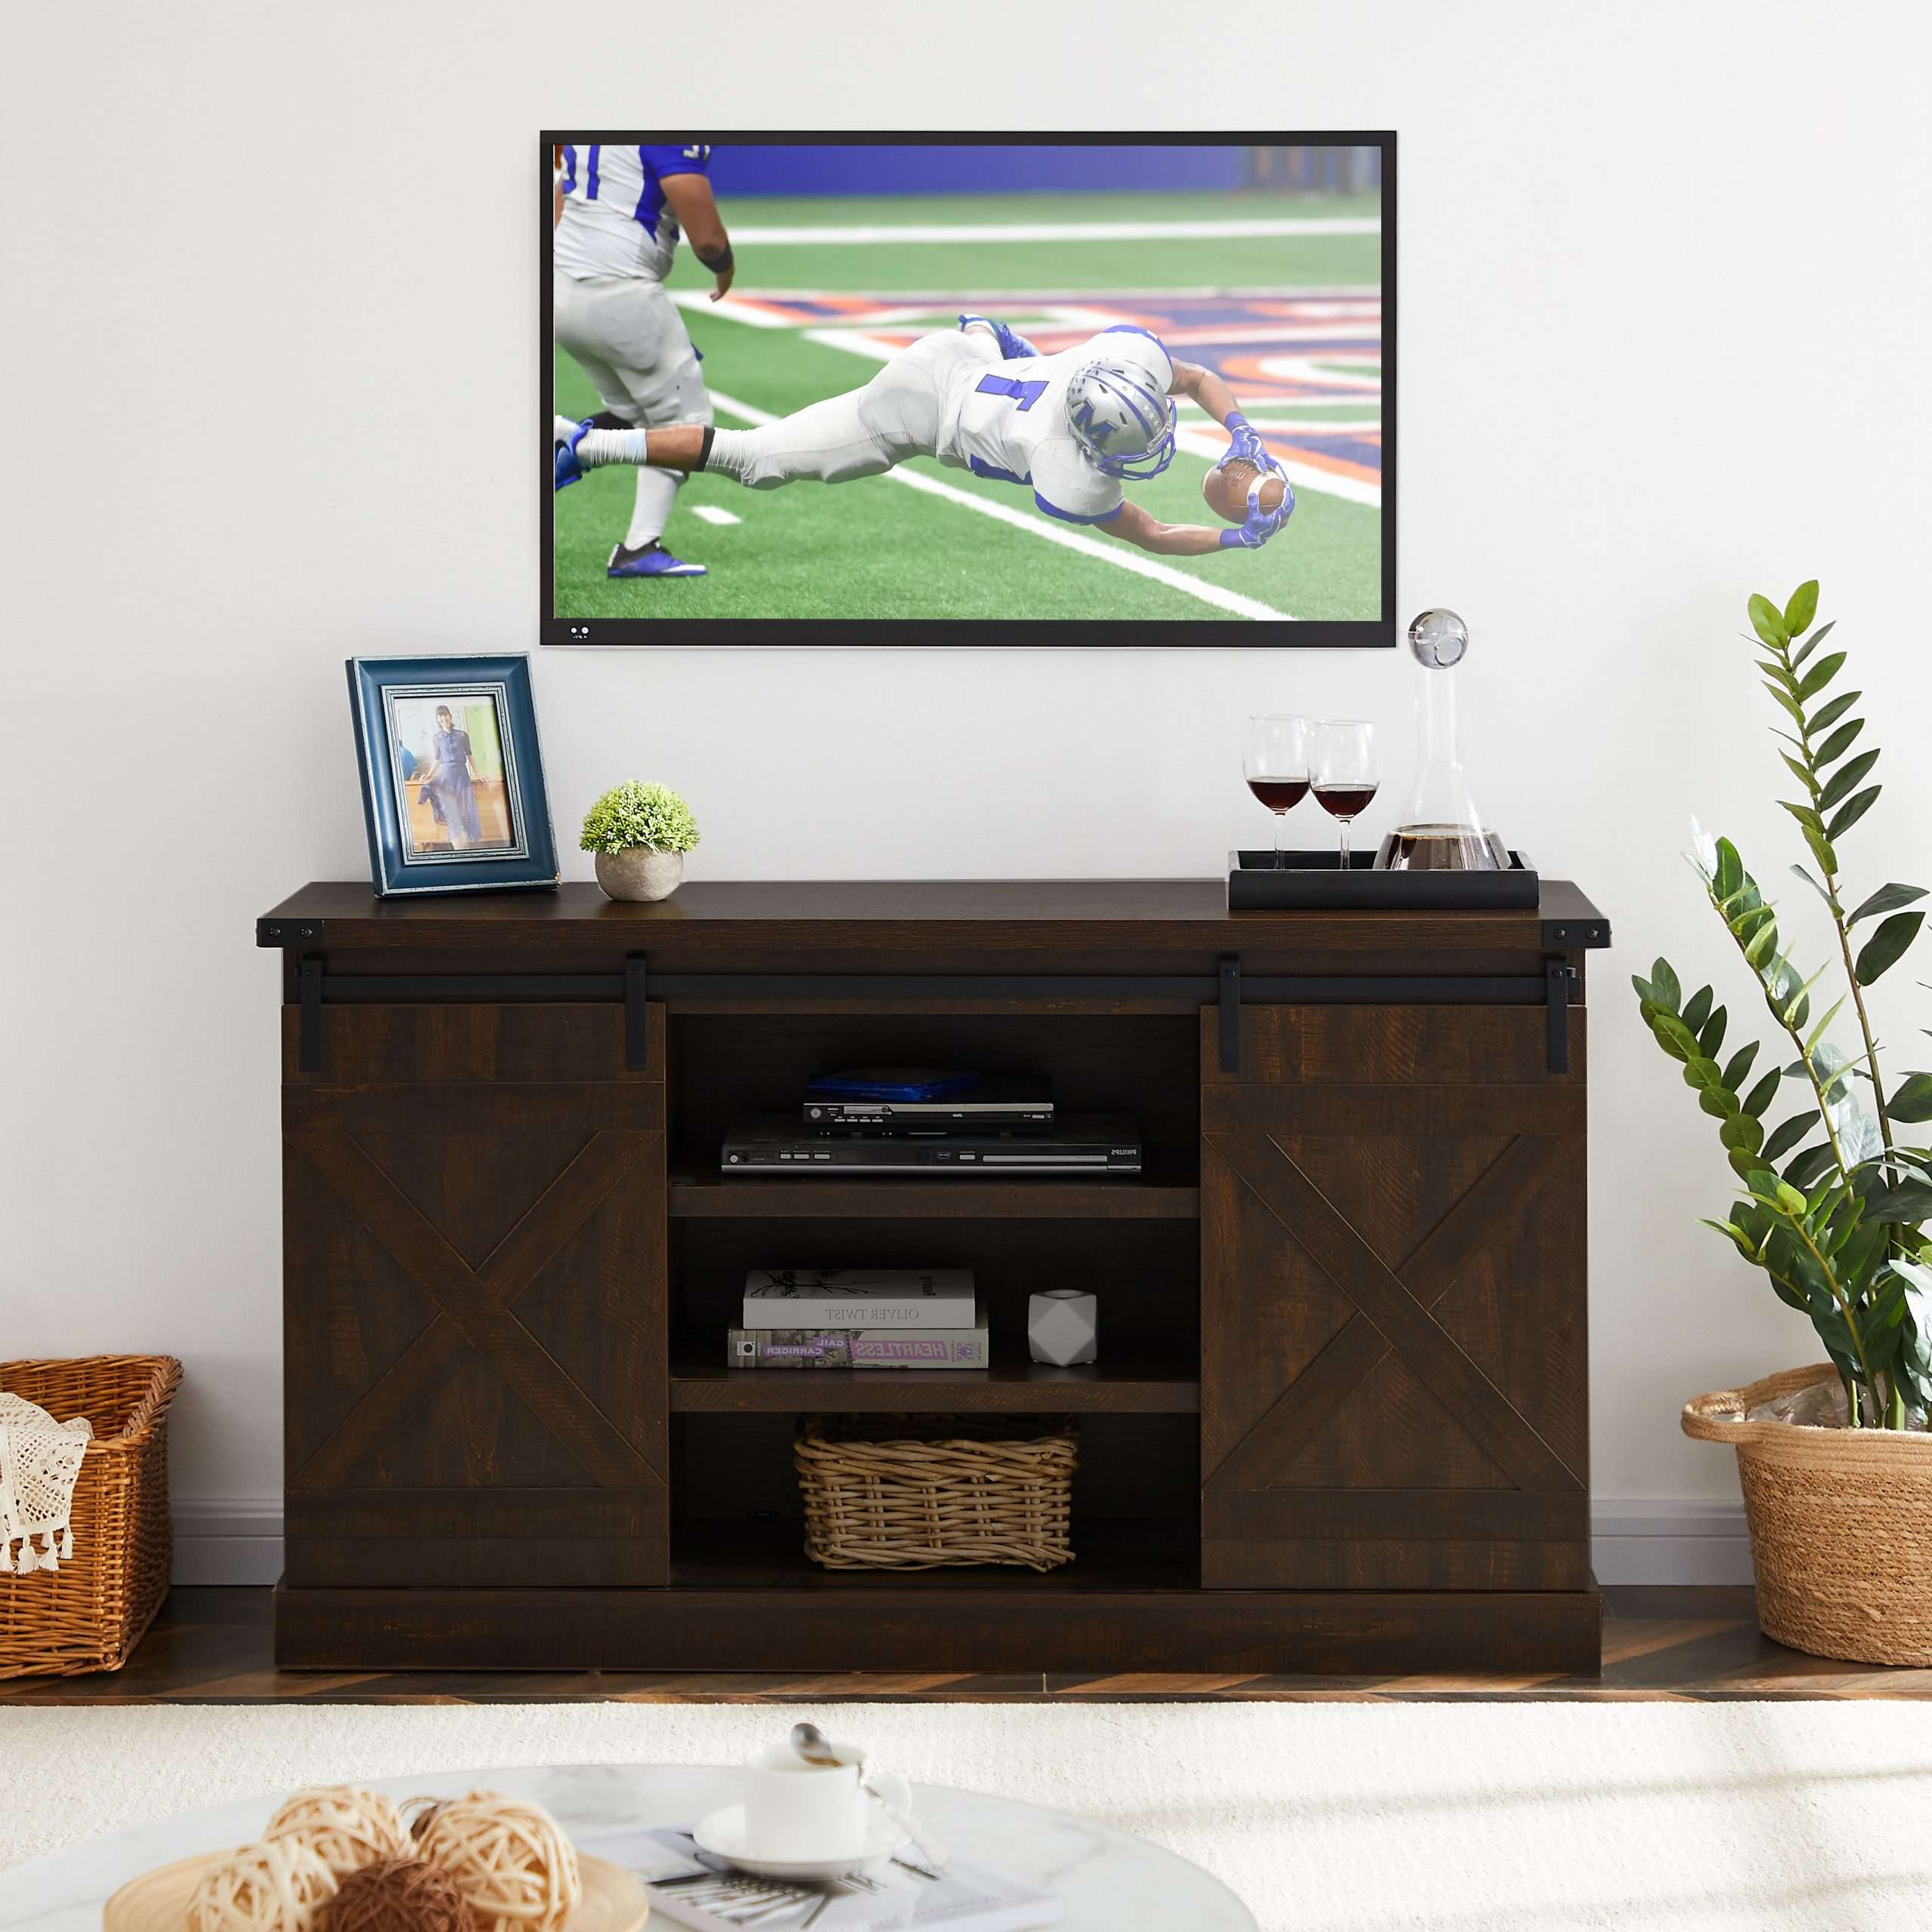 Tv Stand For 40 65 Inch Tv, Modern Farmhouse Tv Stand With Throughout Modern 2 Glass Door Corner Tv Stands (View 2 of 20)